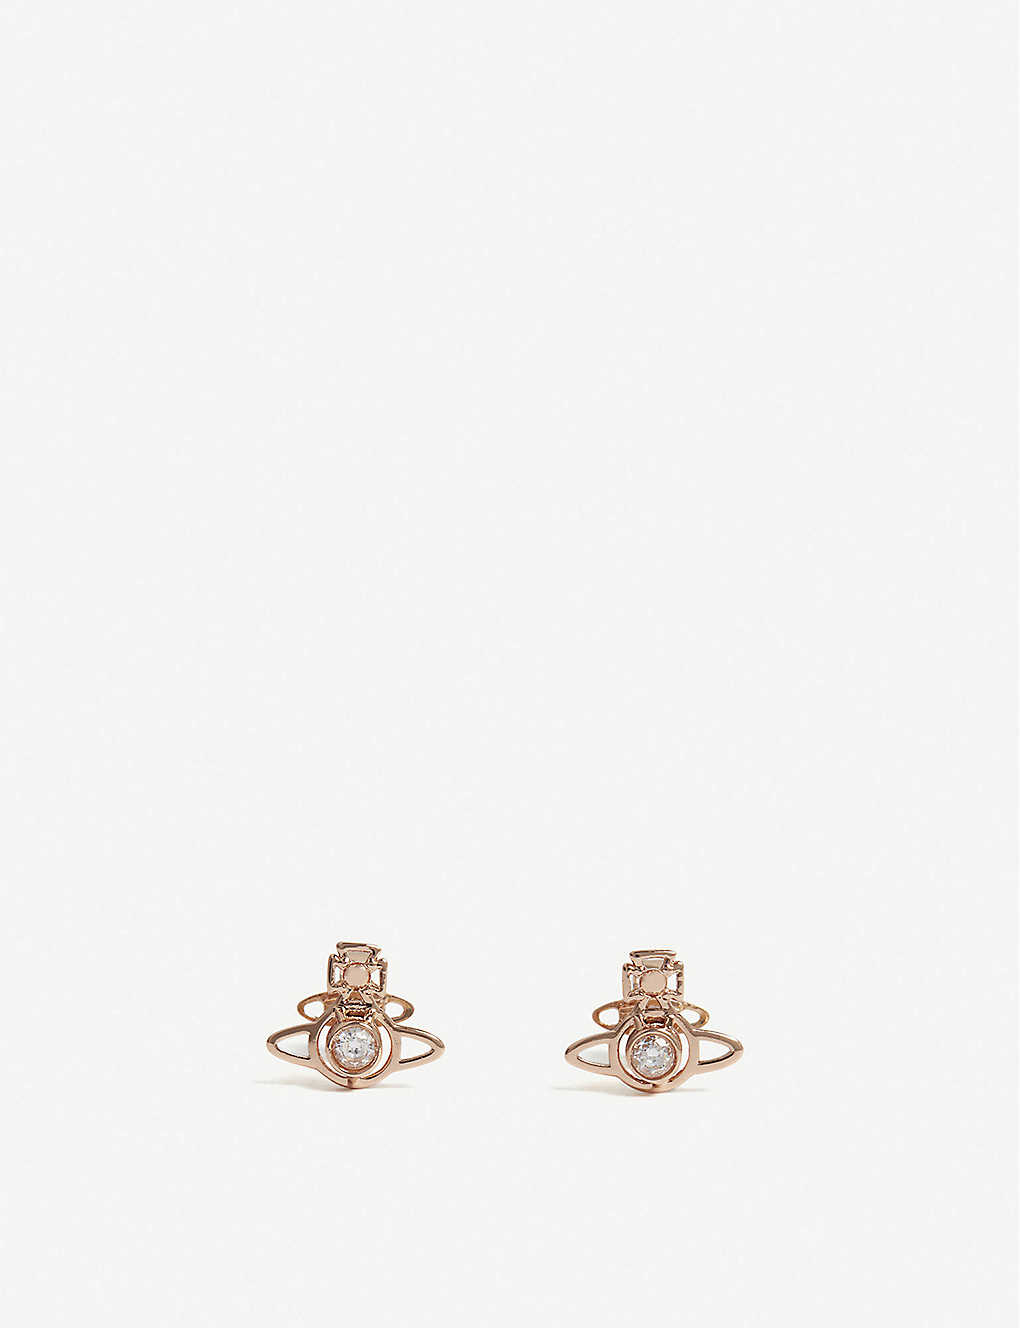 744ac7f55 VIVIENNE WESTWOOD JEWELLERY - Nora orb earrings | Selfridges.com